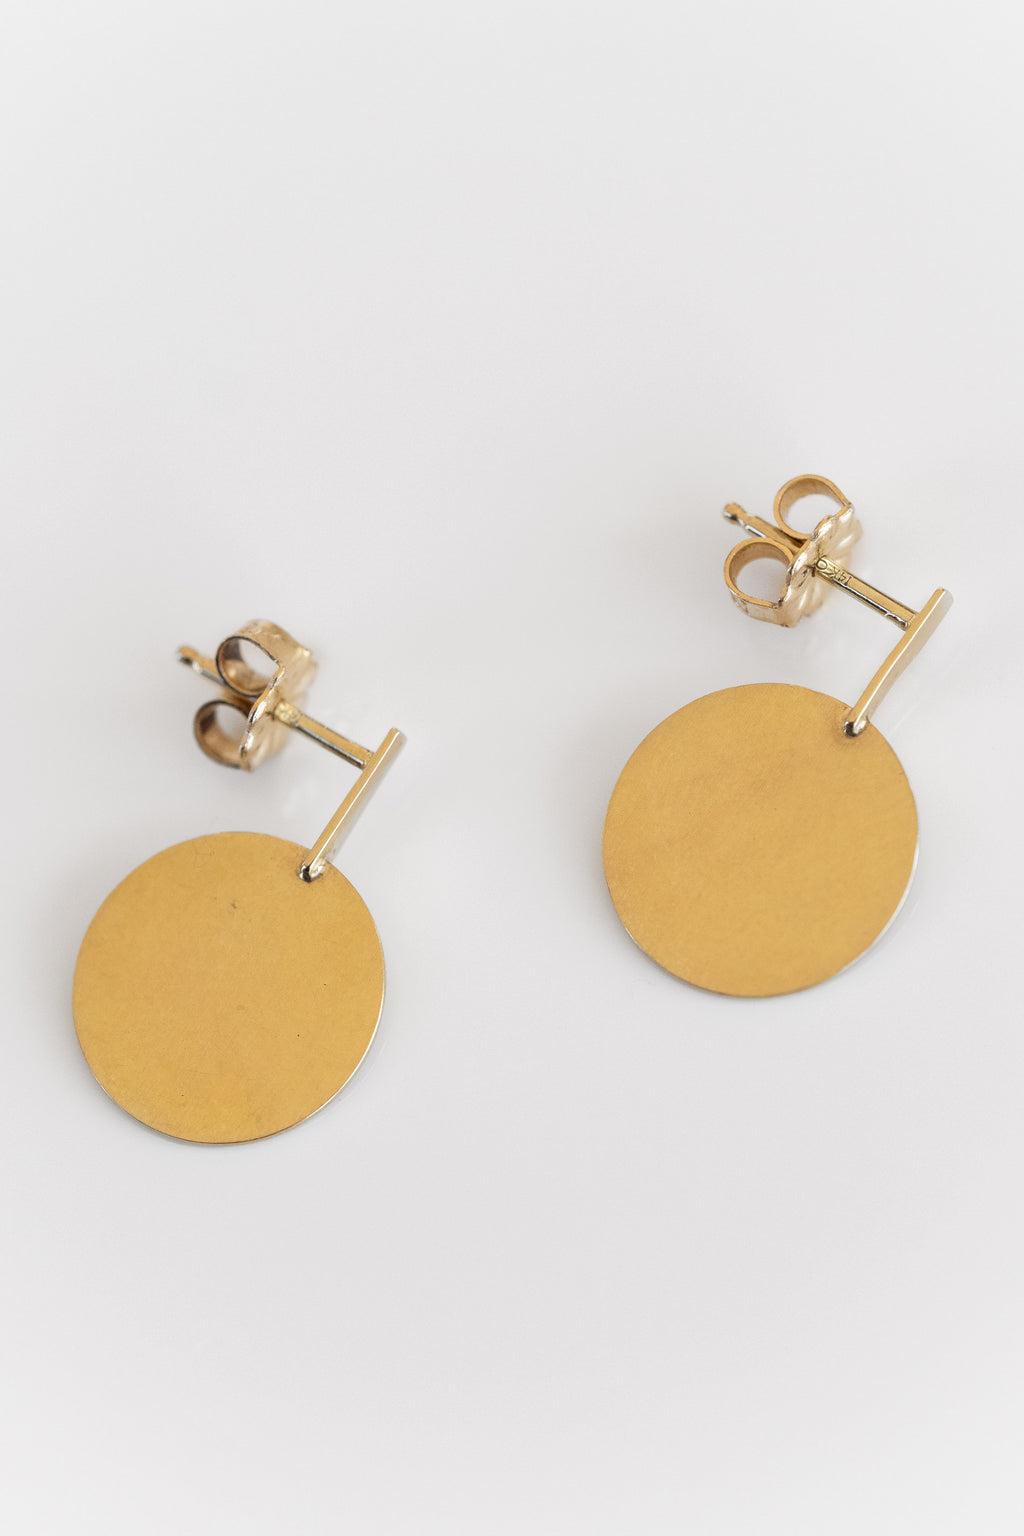 CIRCLE AND RECTANGLE DROP STUDS IN GOLD